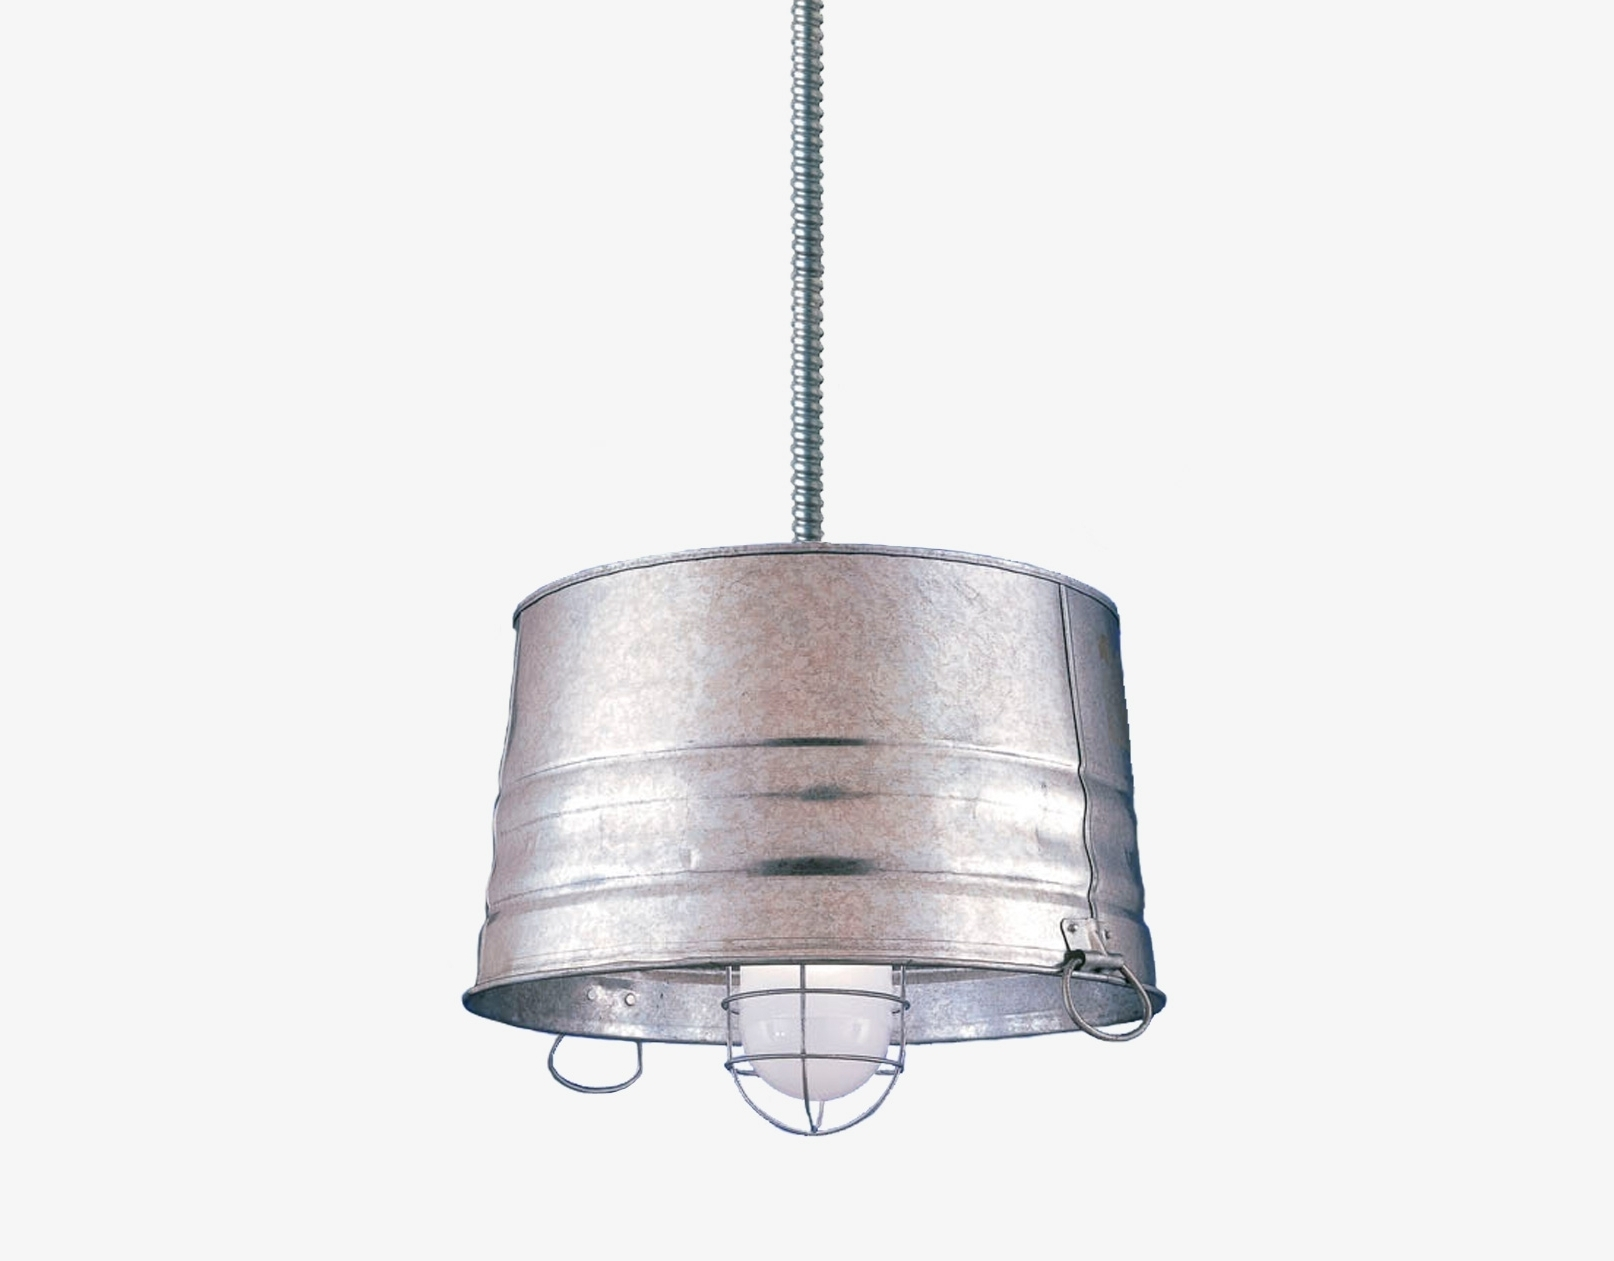 Galvanized Metal Outdoor Light Fixture • Outdoor Lighting For Well Known Galvanized Outdoor Ceiling Lights (View 10 of 20)